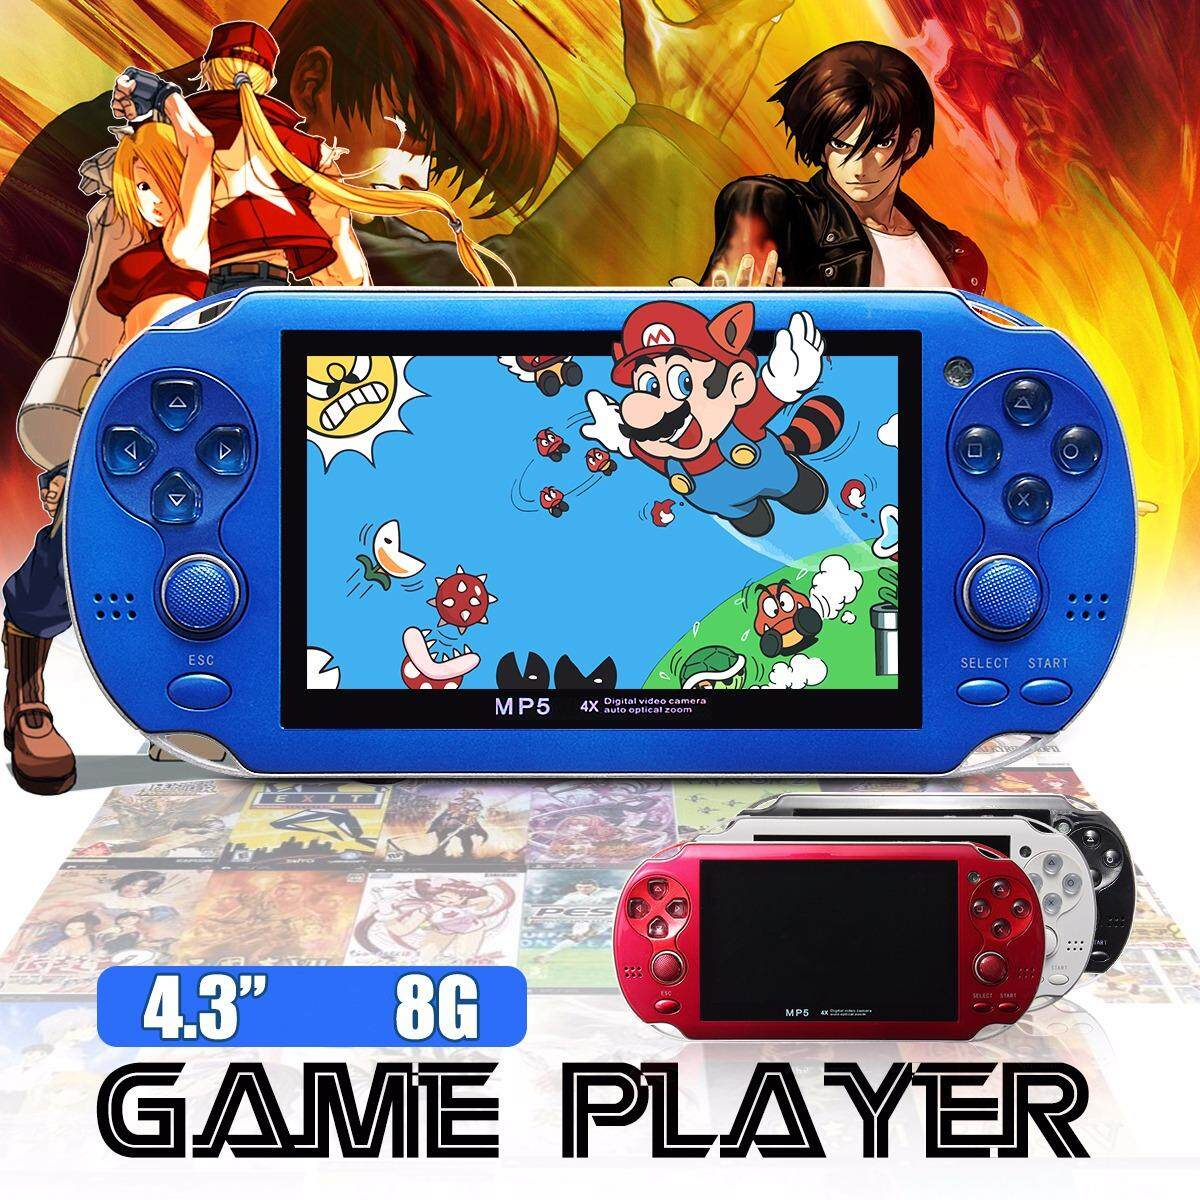 8GB 4.3 Inch Built In 2000 Games Portable Handheld Video Game Console Player US Black - intl